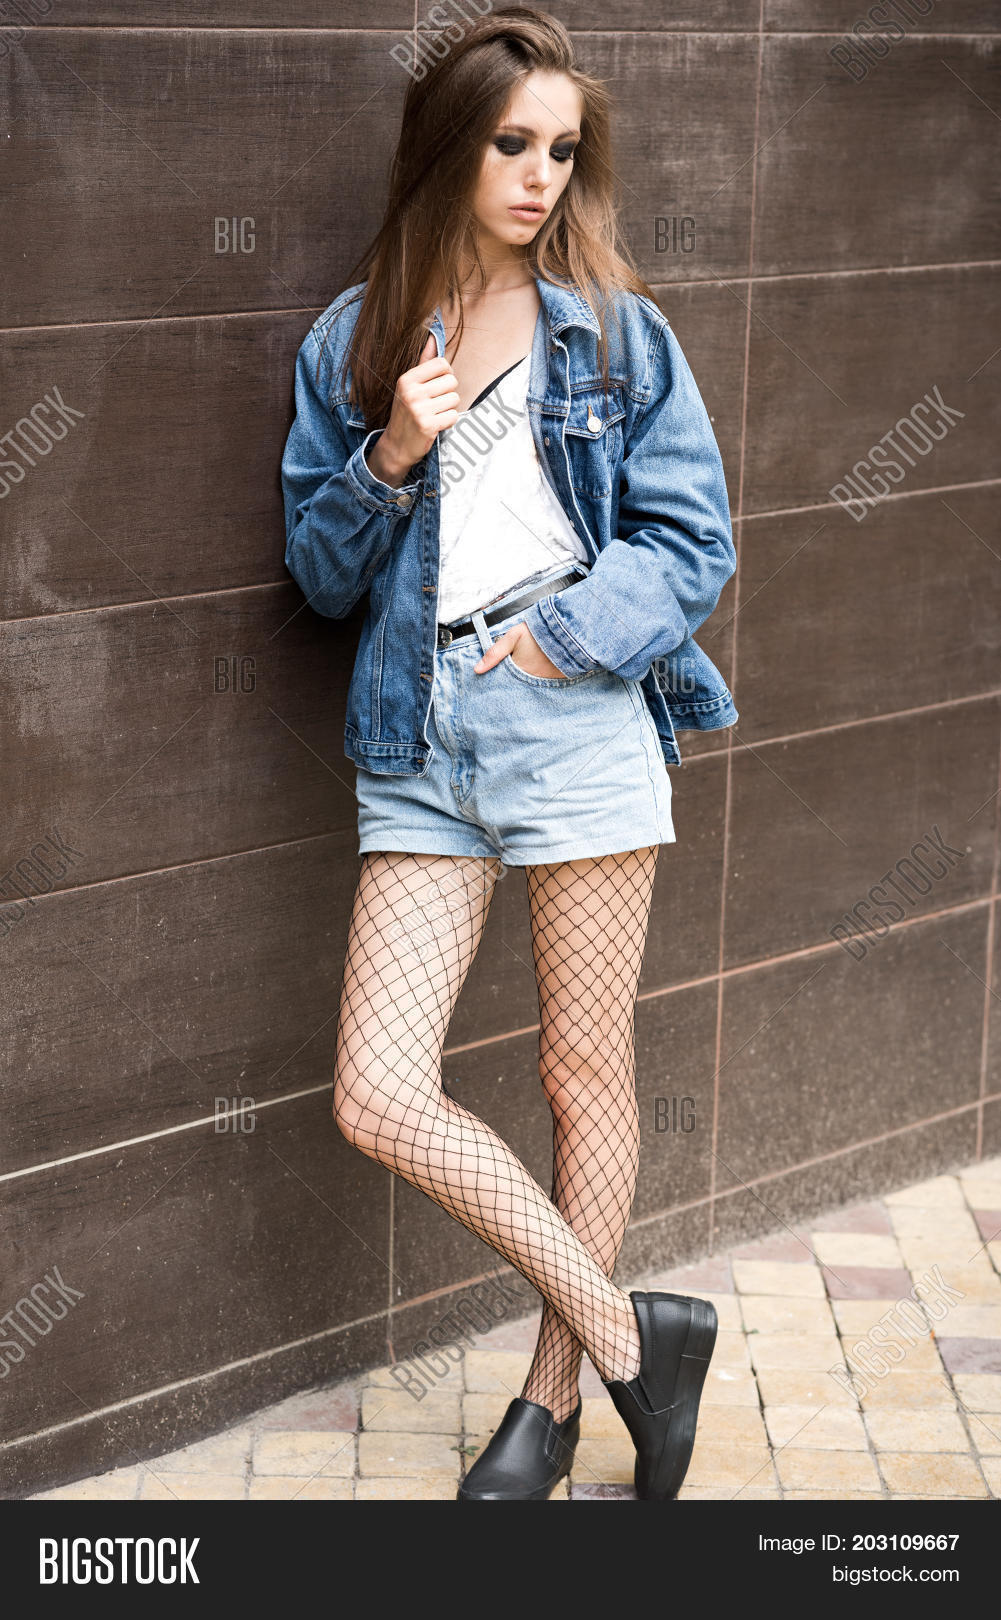 08ad1cd67c3 Beautiful girl in denim shorts and jeans jacket in the street. Rock style.  Fashionable